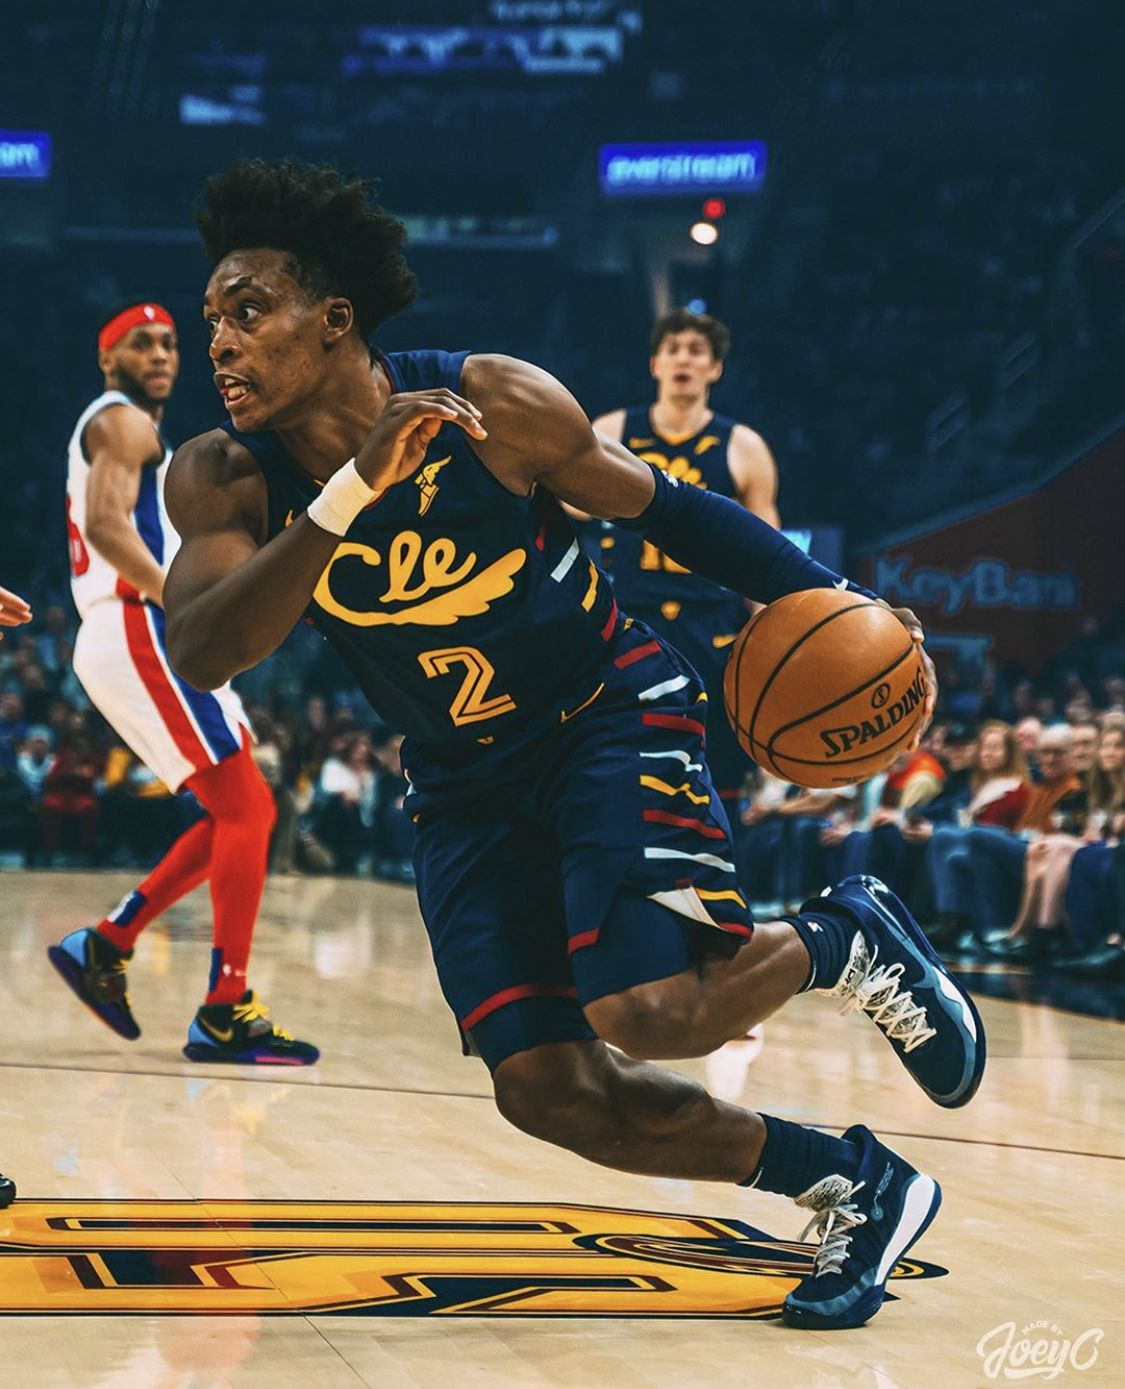 Pin By Daniel Son On Collin Sexton In 2020 National Basketball Association Basketball Association Cleveland Cavaliers